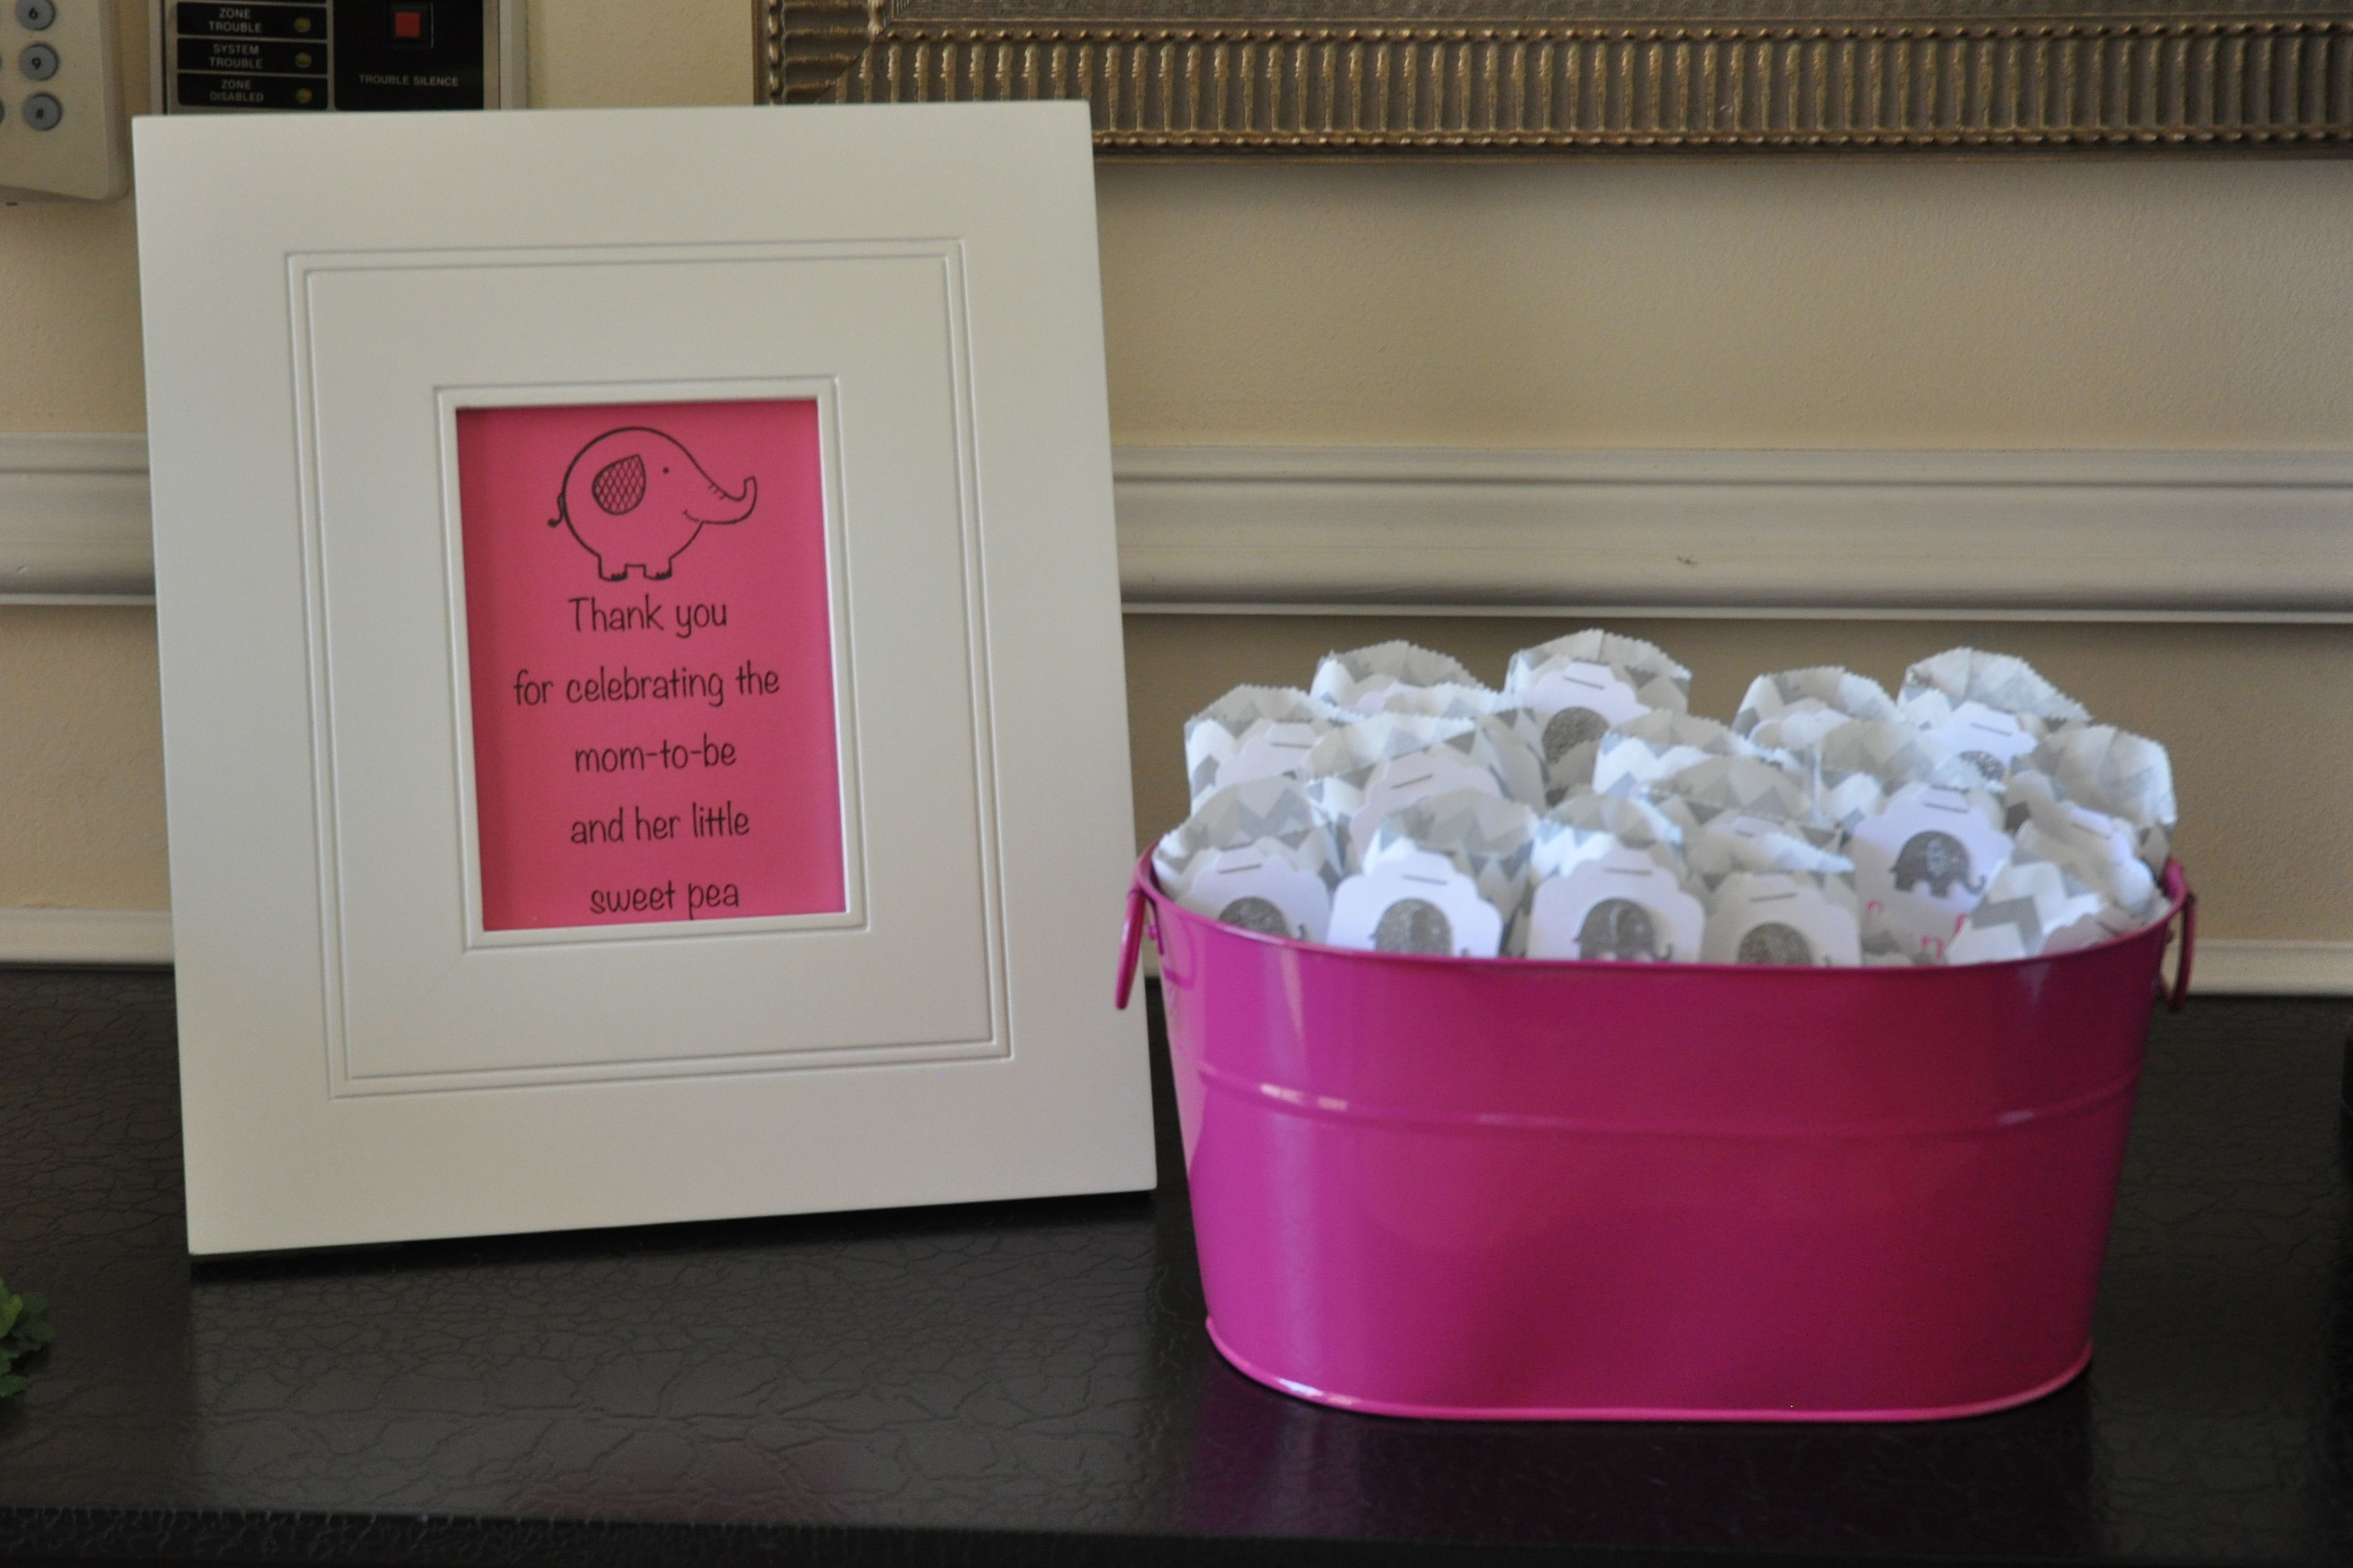 Sweet Pea Hand Sanitizer Baby Shower Favors With The Saying A